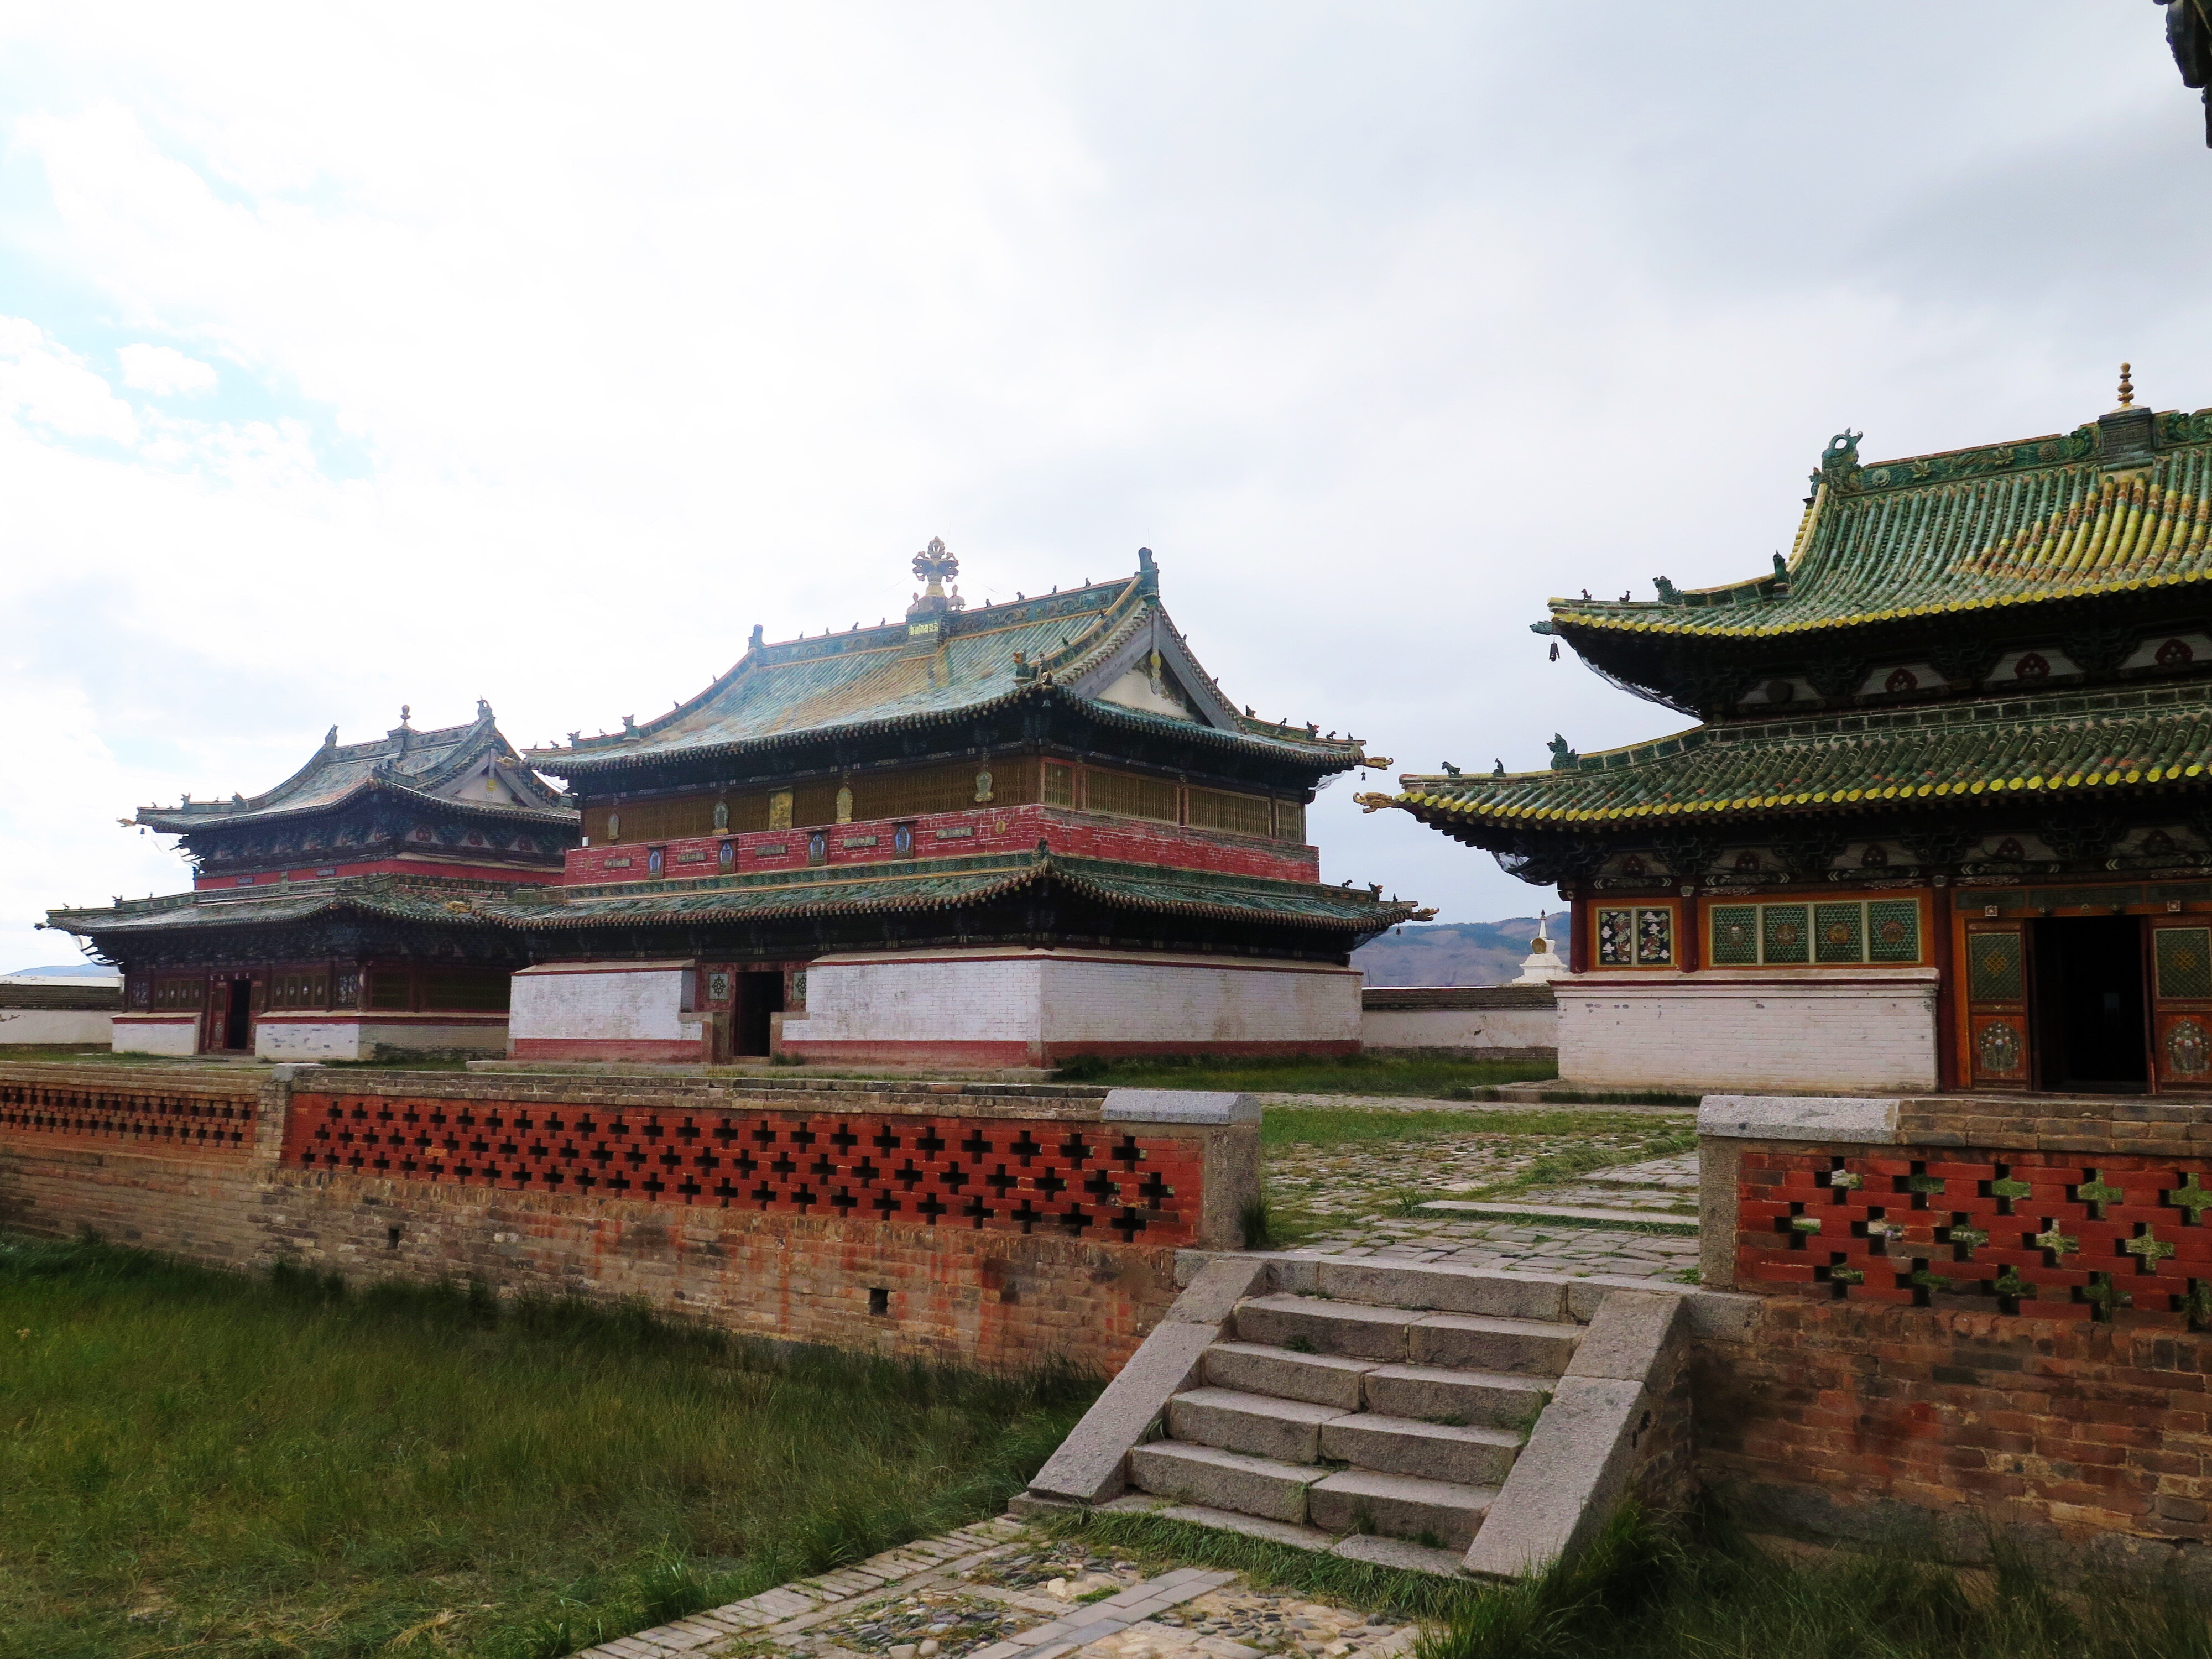 These are the three main temples, which we toured.